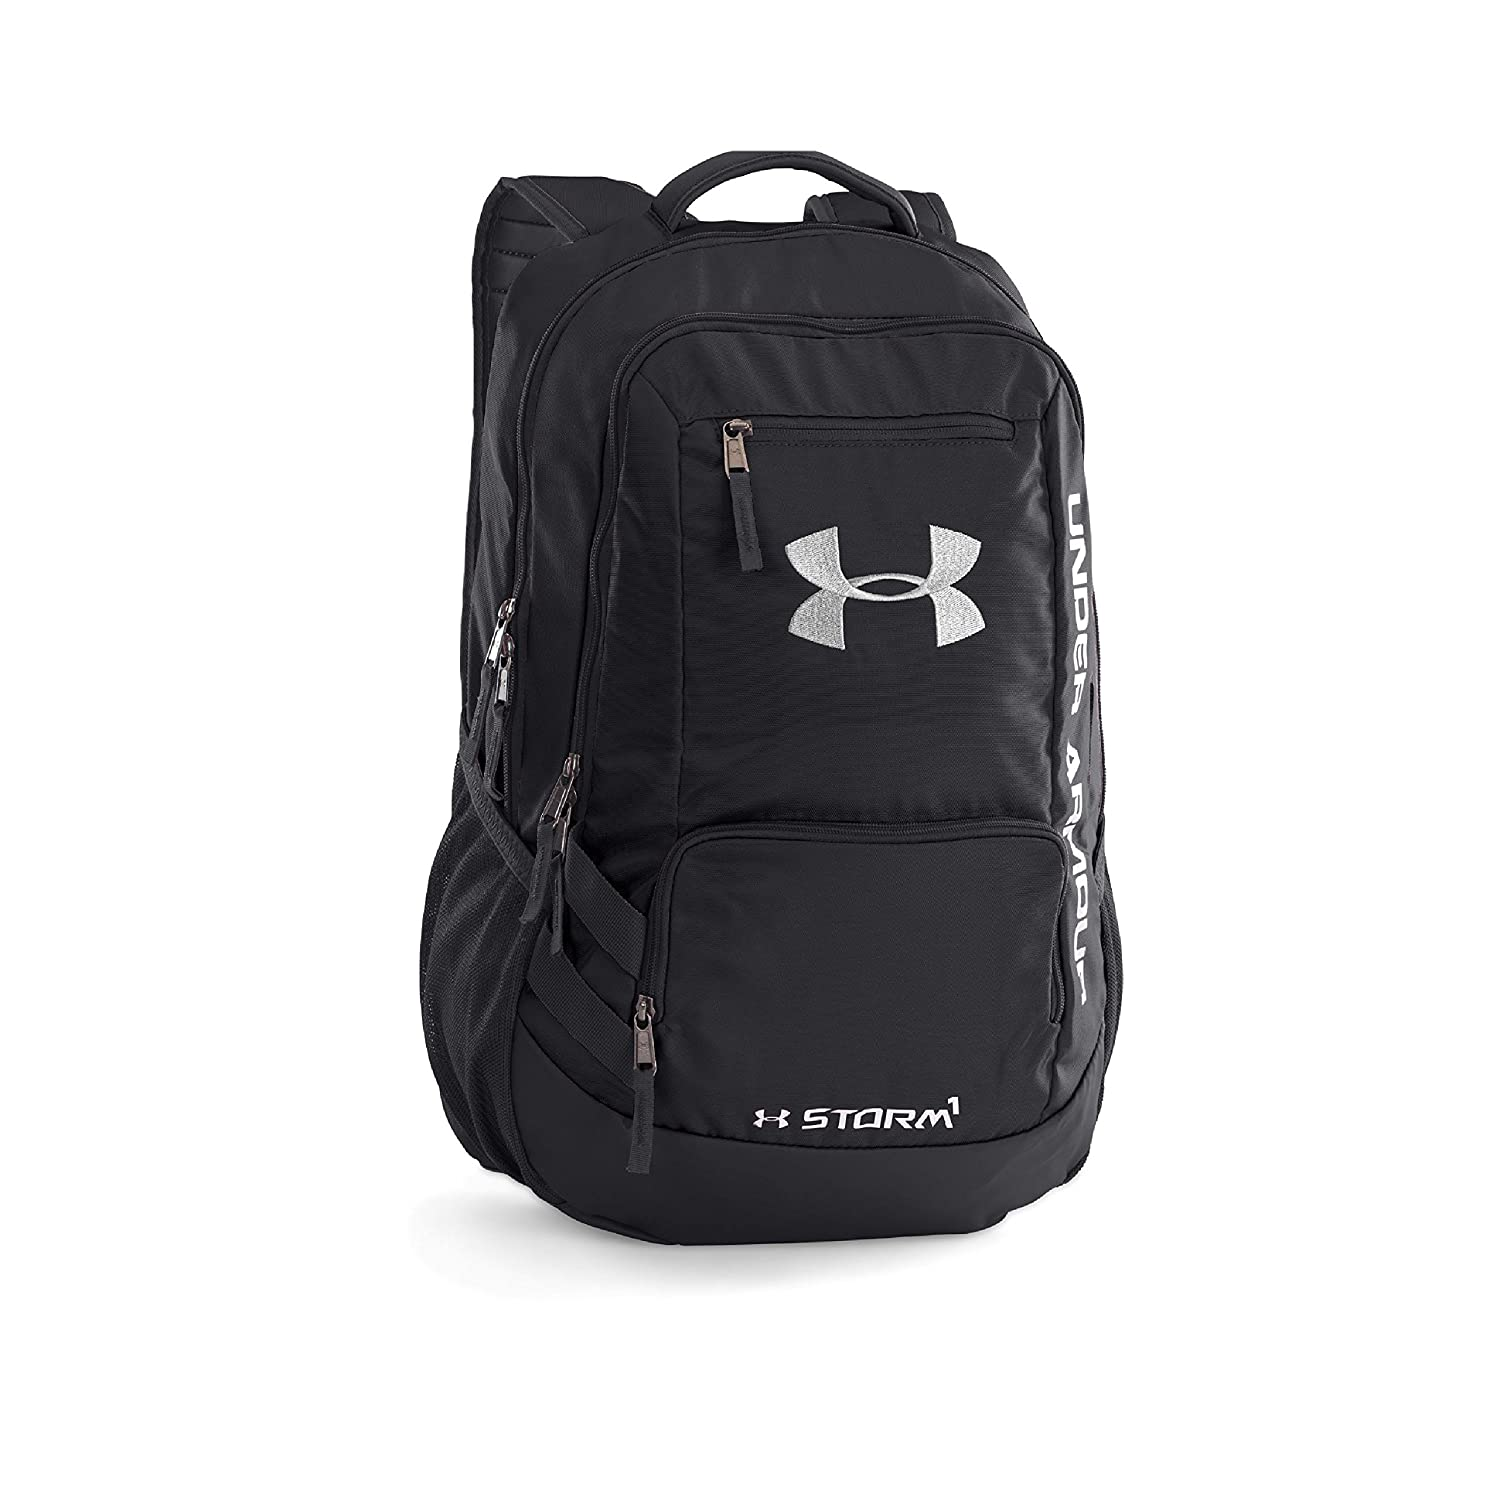 55f1ebbea57a Under Armour Hustle Black Casual Backpack (1263964-001)  UNDER ARMOUR   Amazon.in  Bags